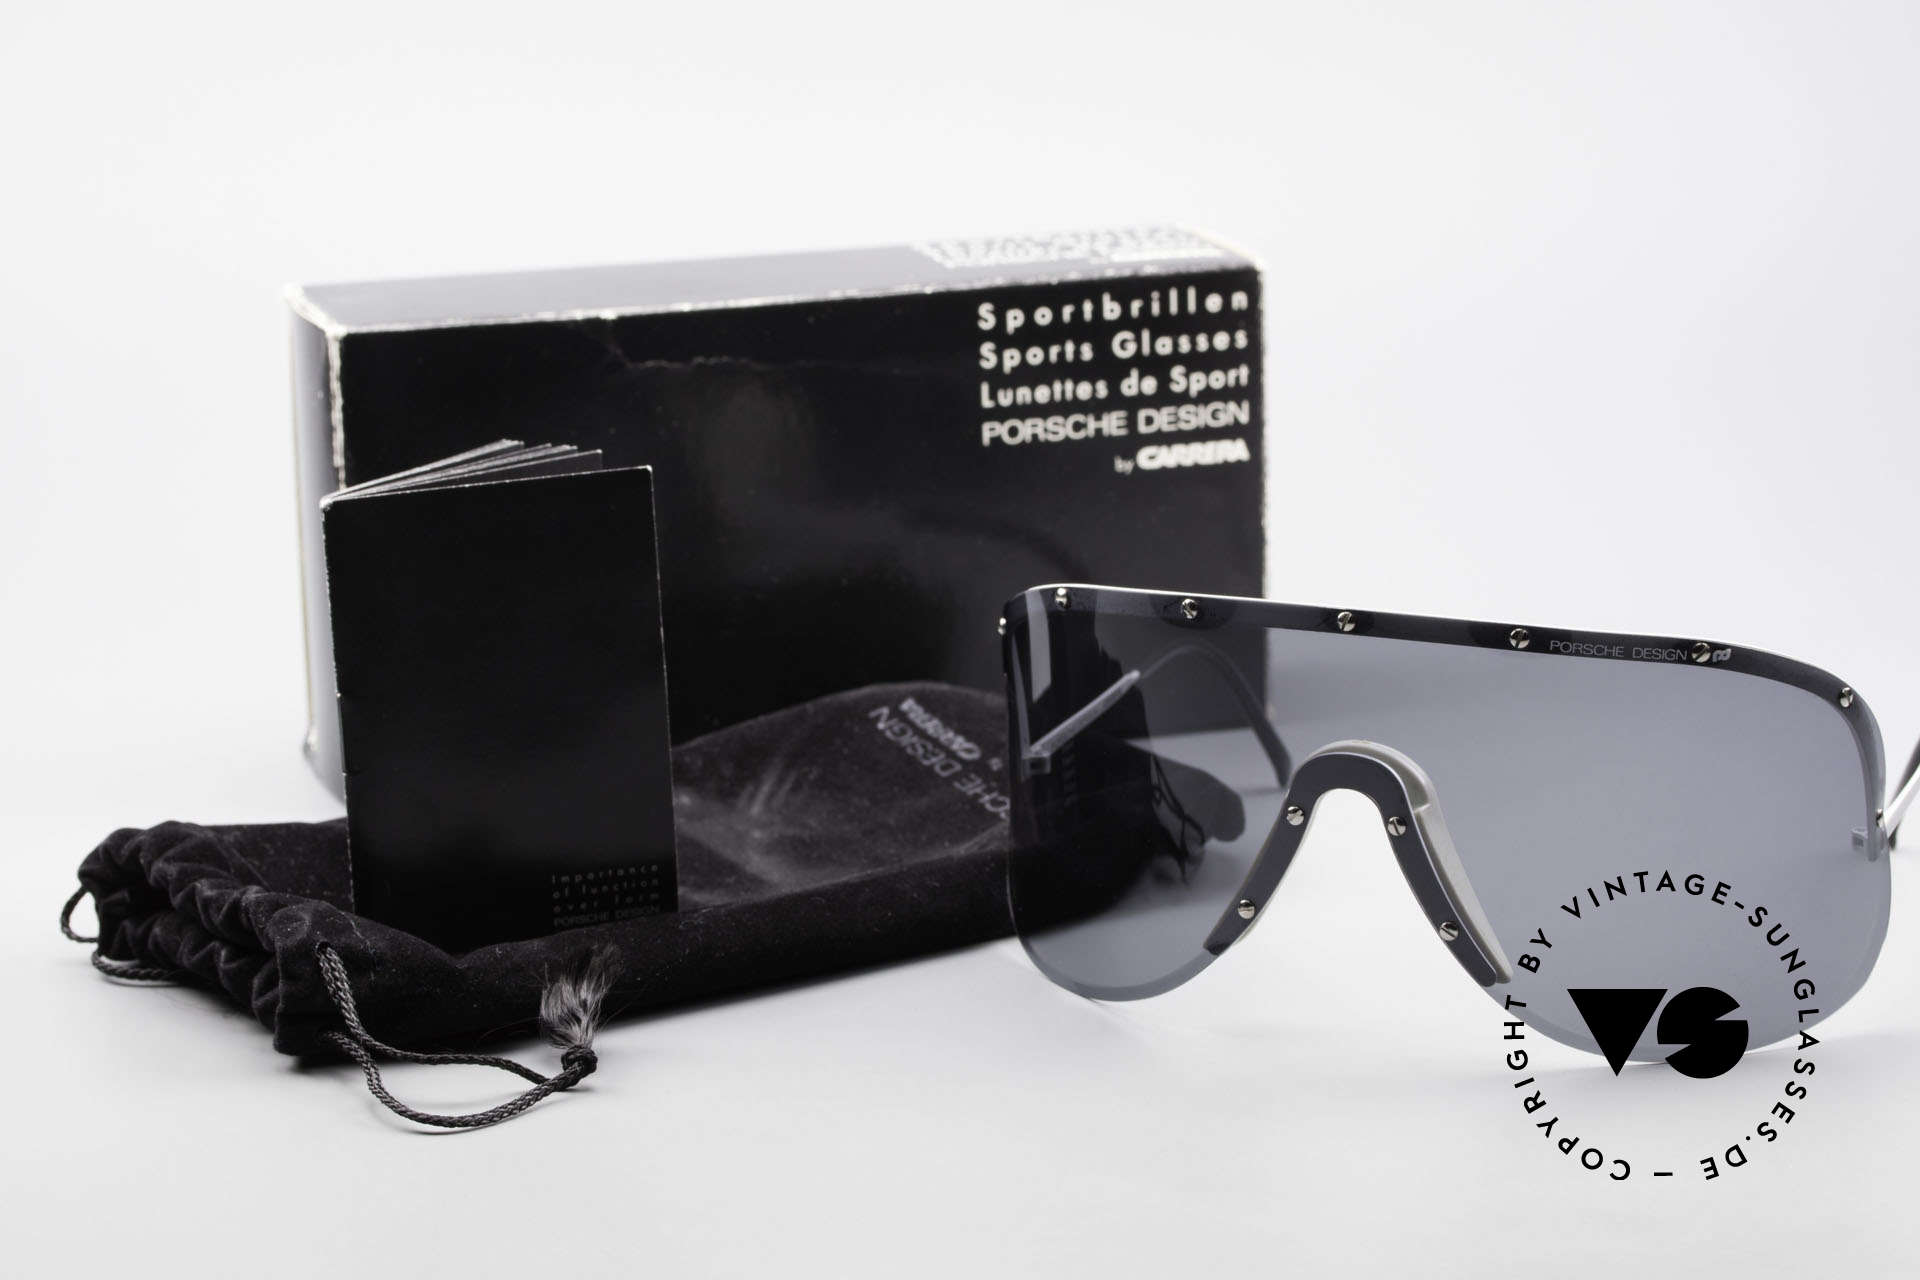 Porsche 5620 Old Yoko Ono Shades Silver, meanwhile, worn by many celebs (Madonna, Will.i.am ...), Made for Men and Women